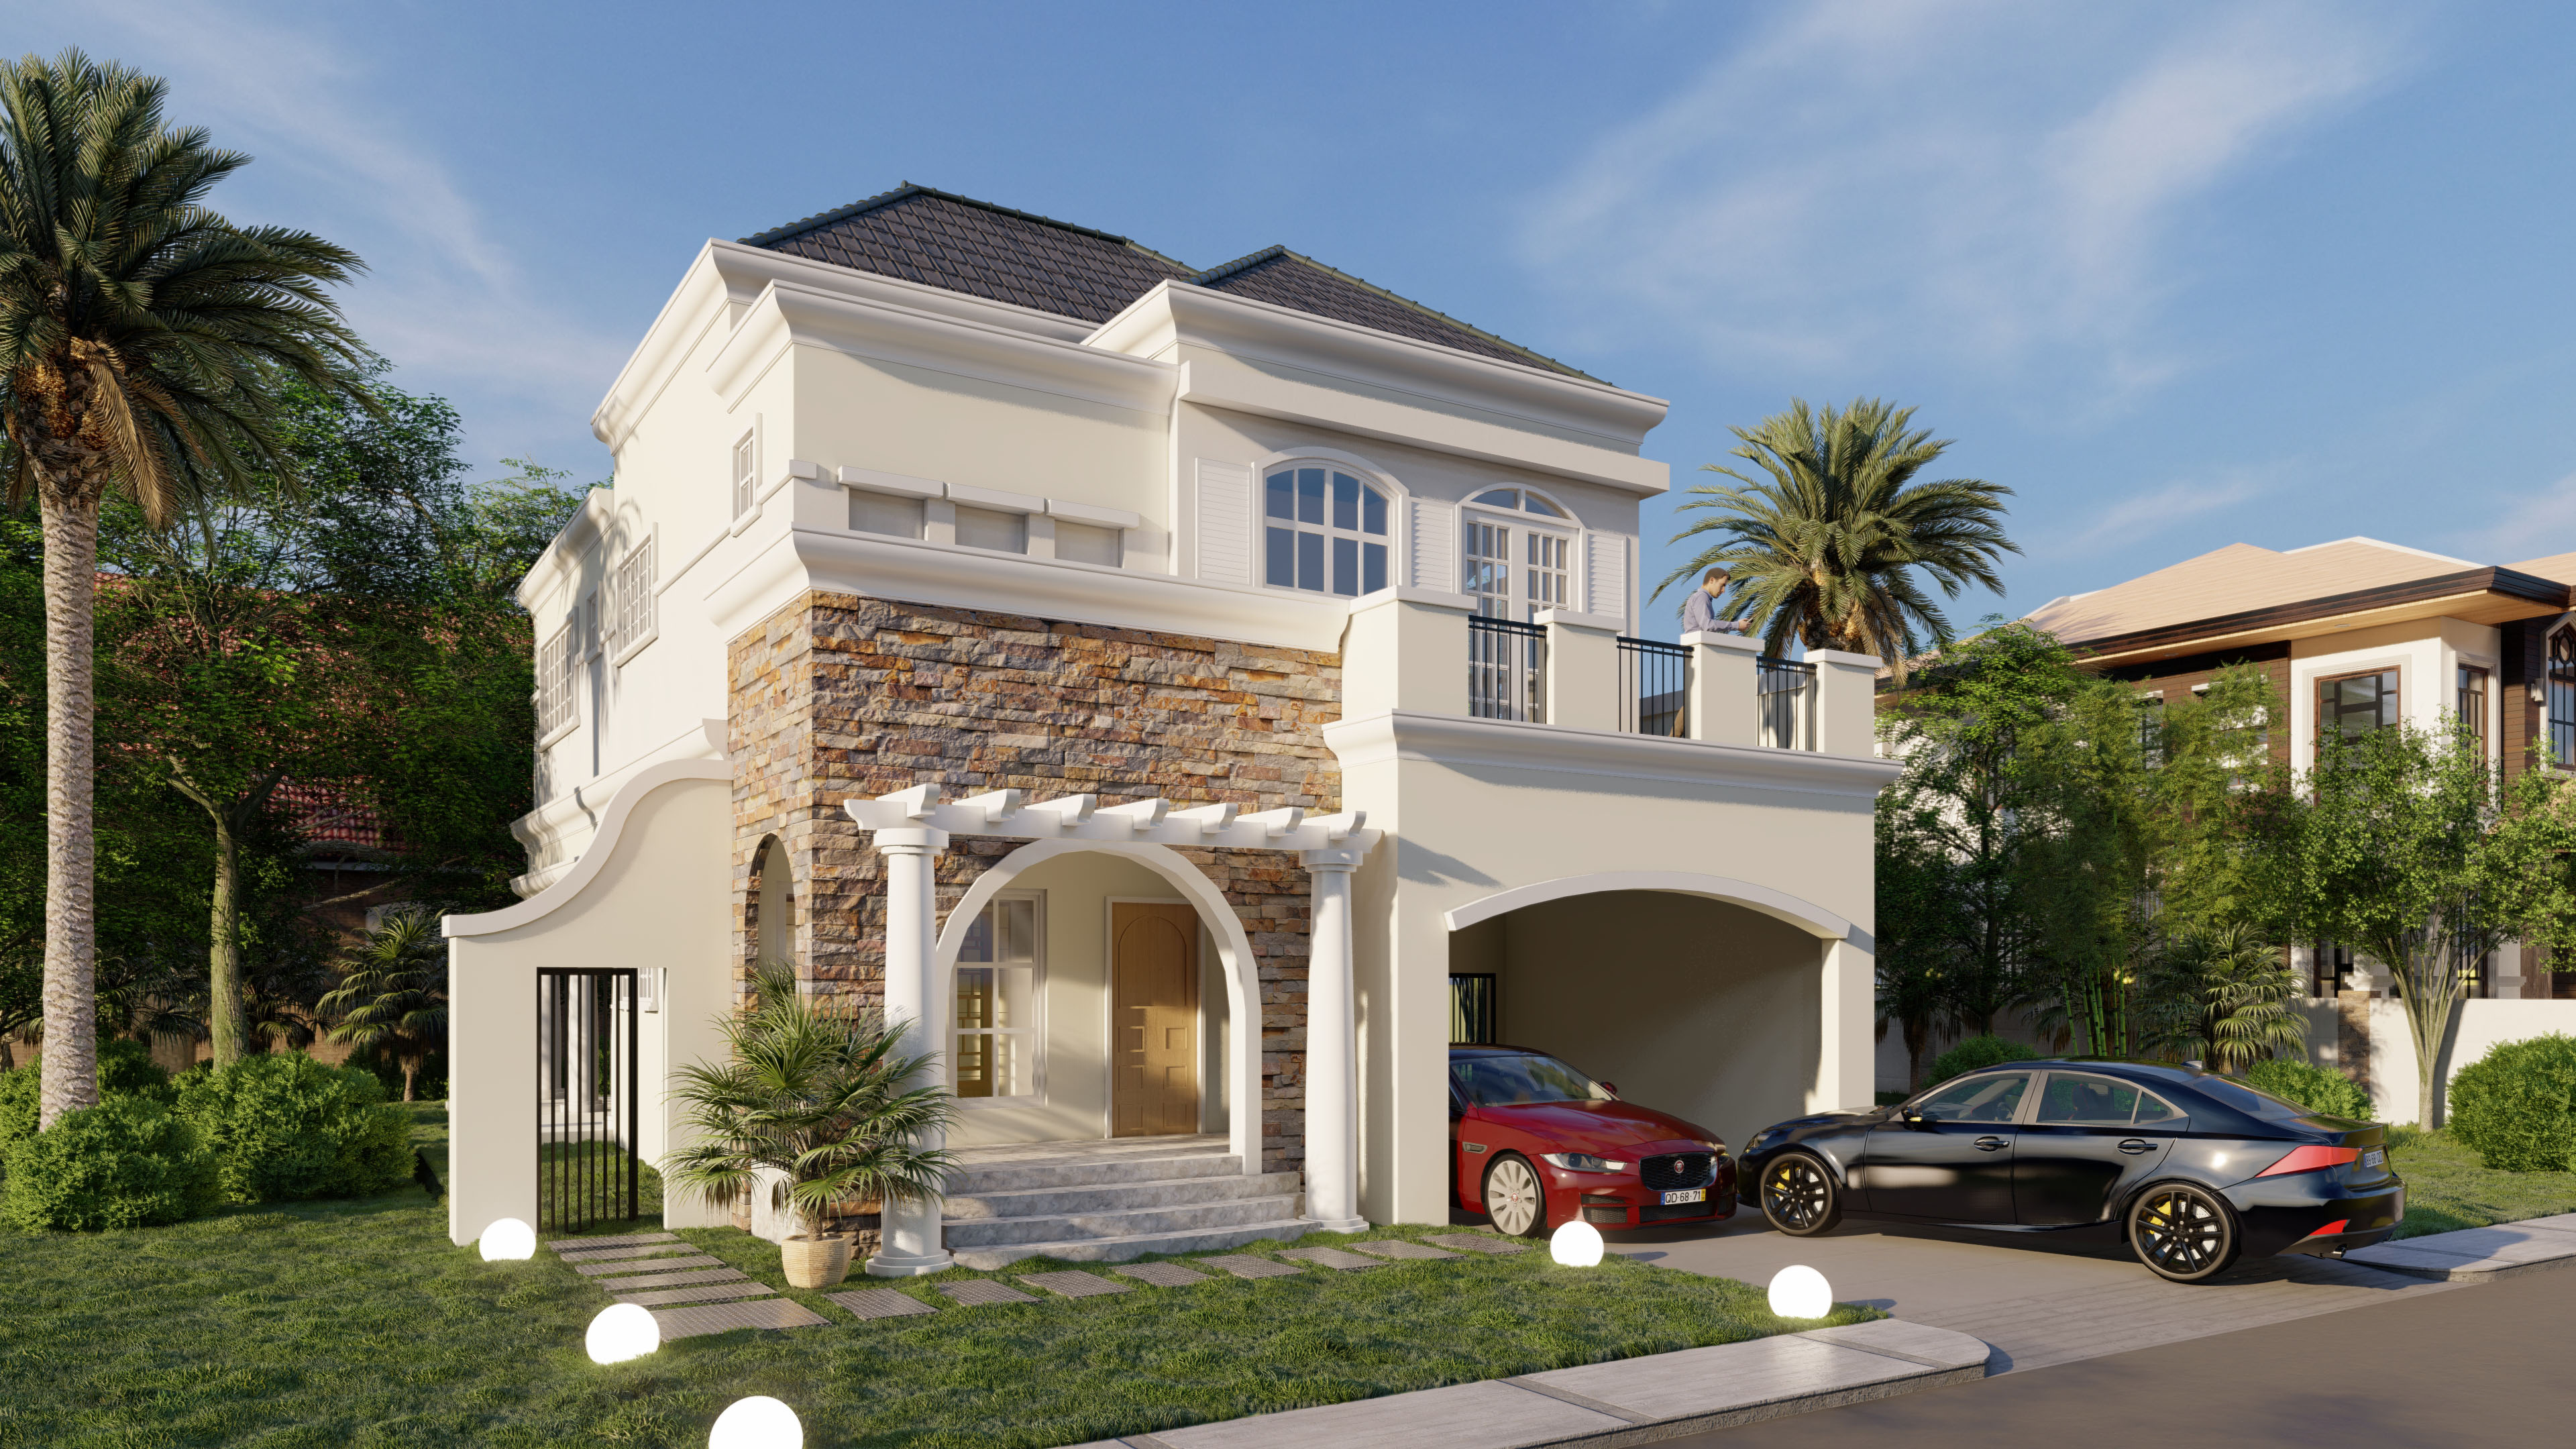 Verasailles Alabang Village Amelie House model 1